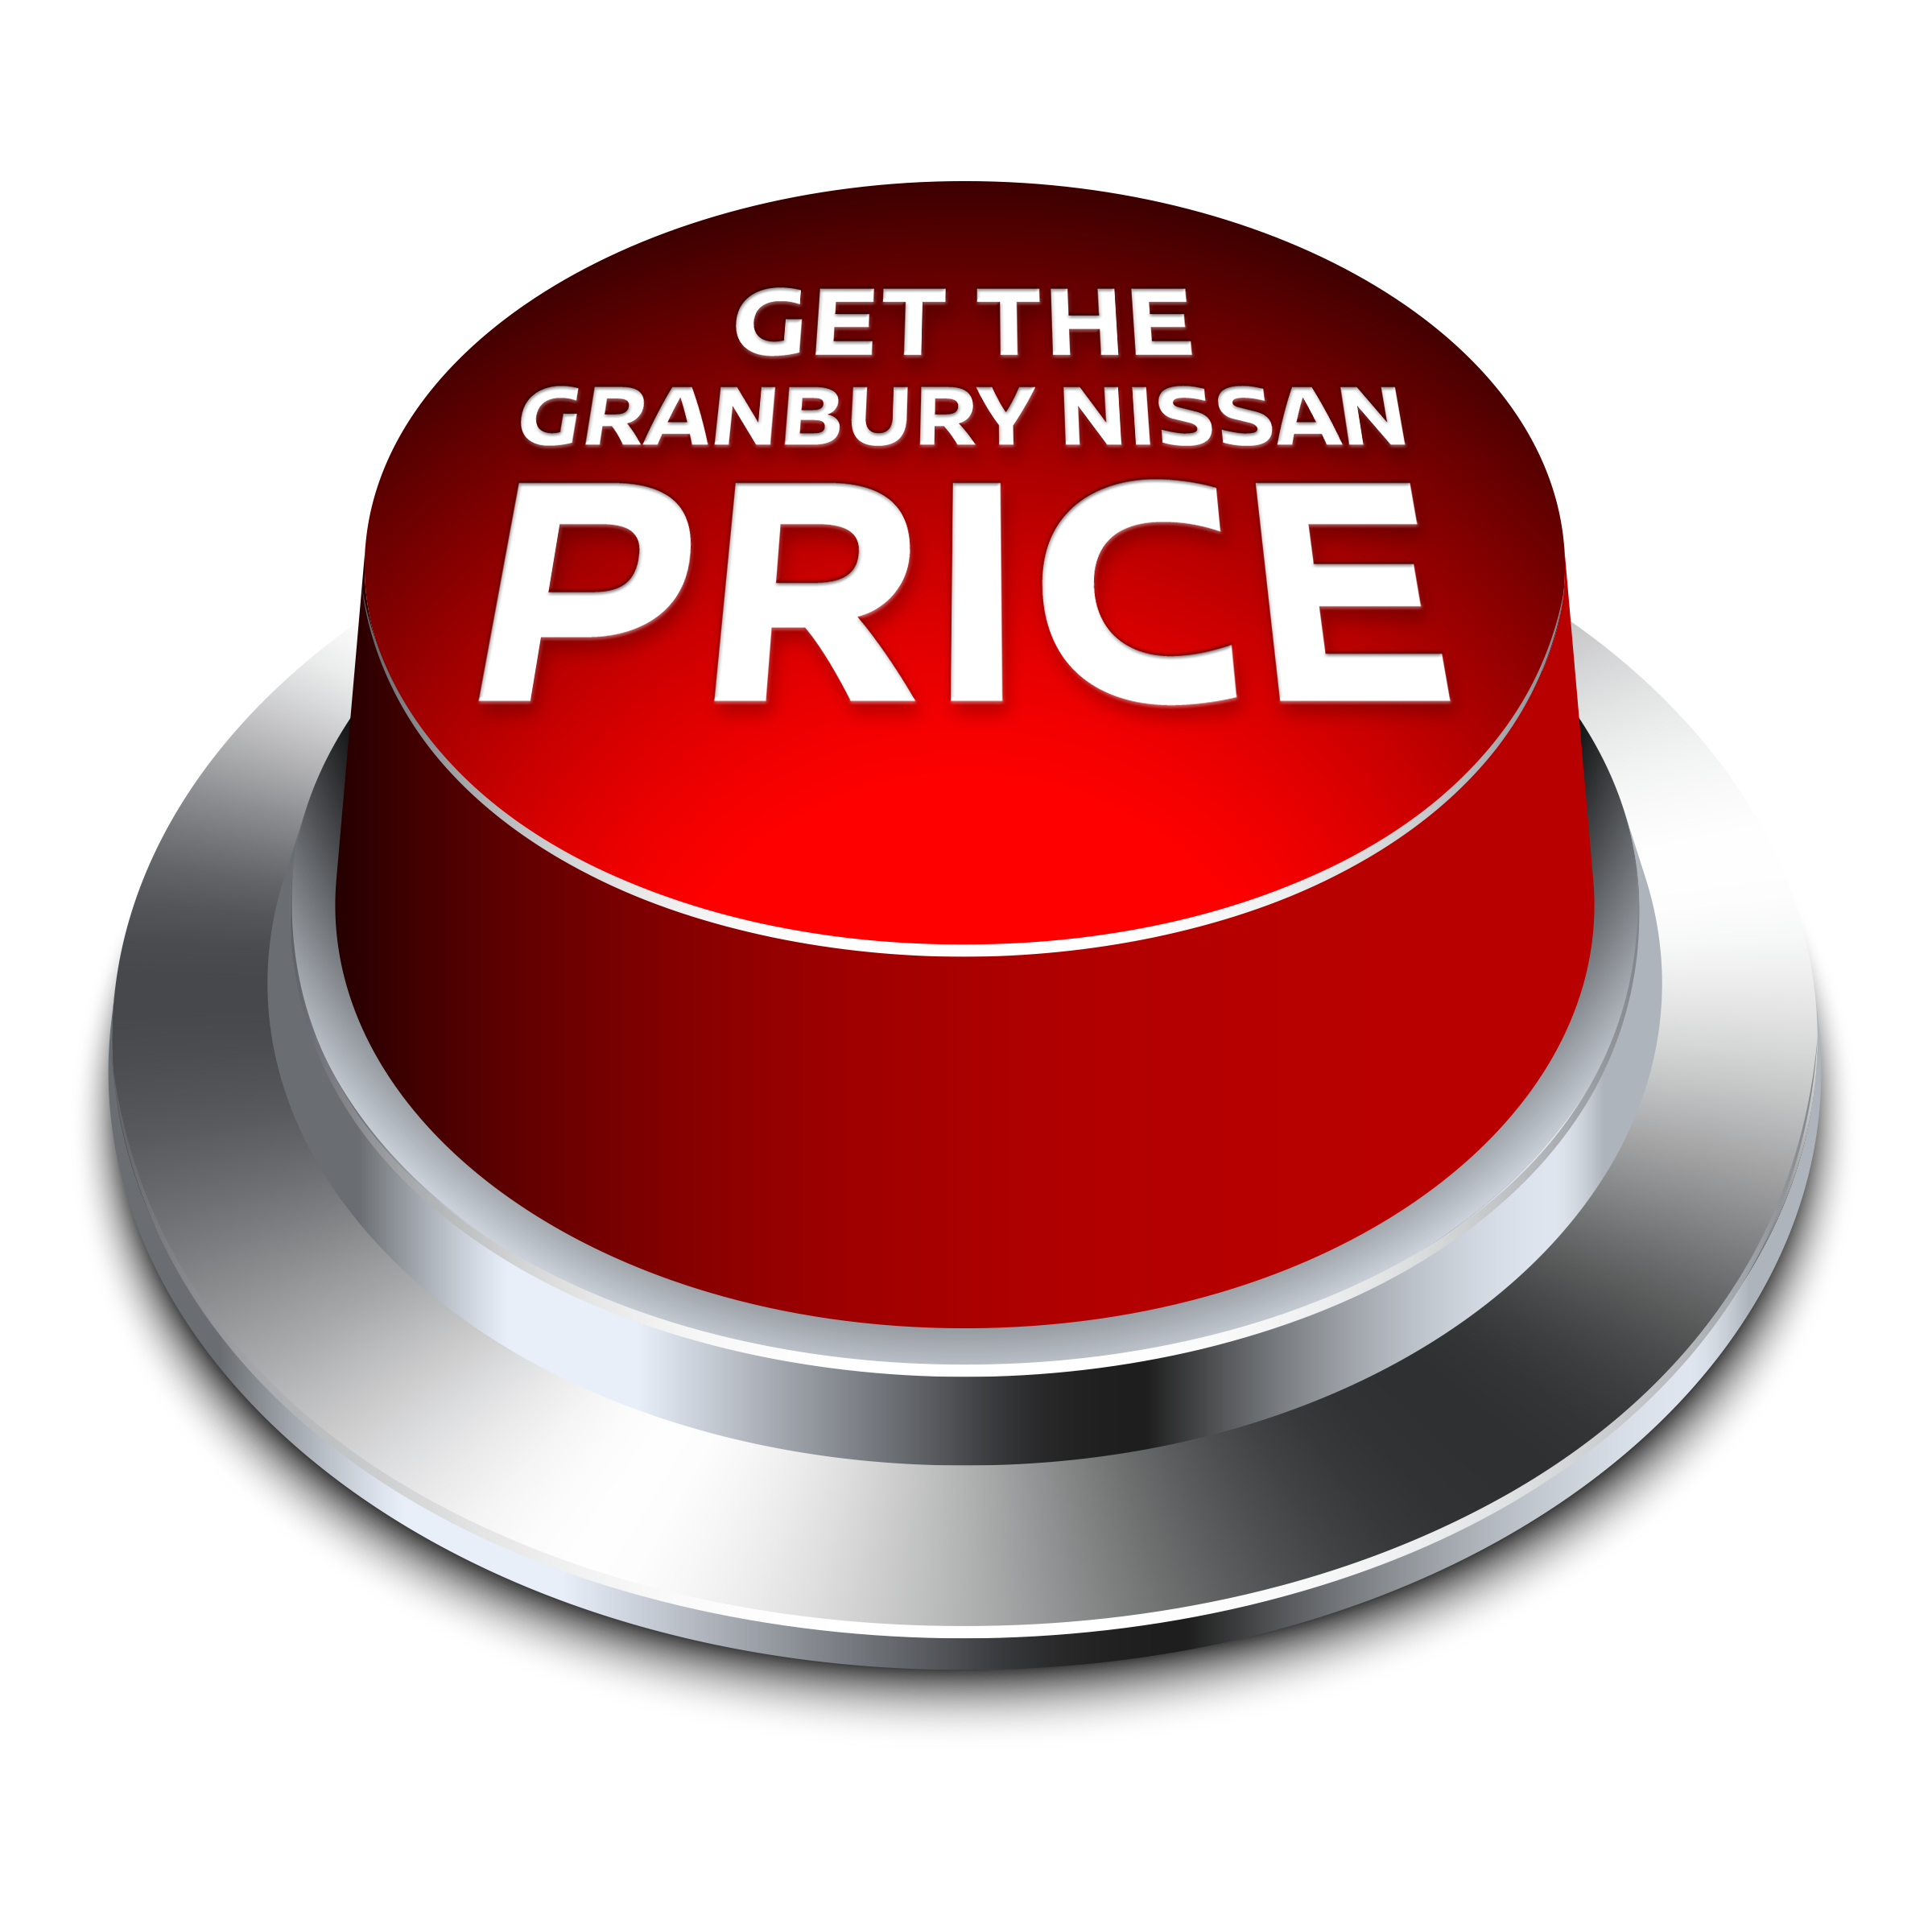 Get Price for this 2018 Nissan Altima 2.5 SR 4dr Car